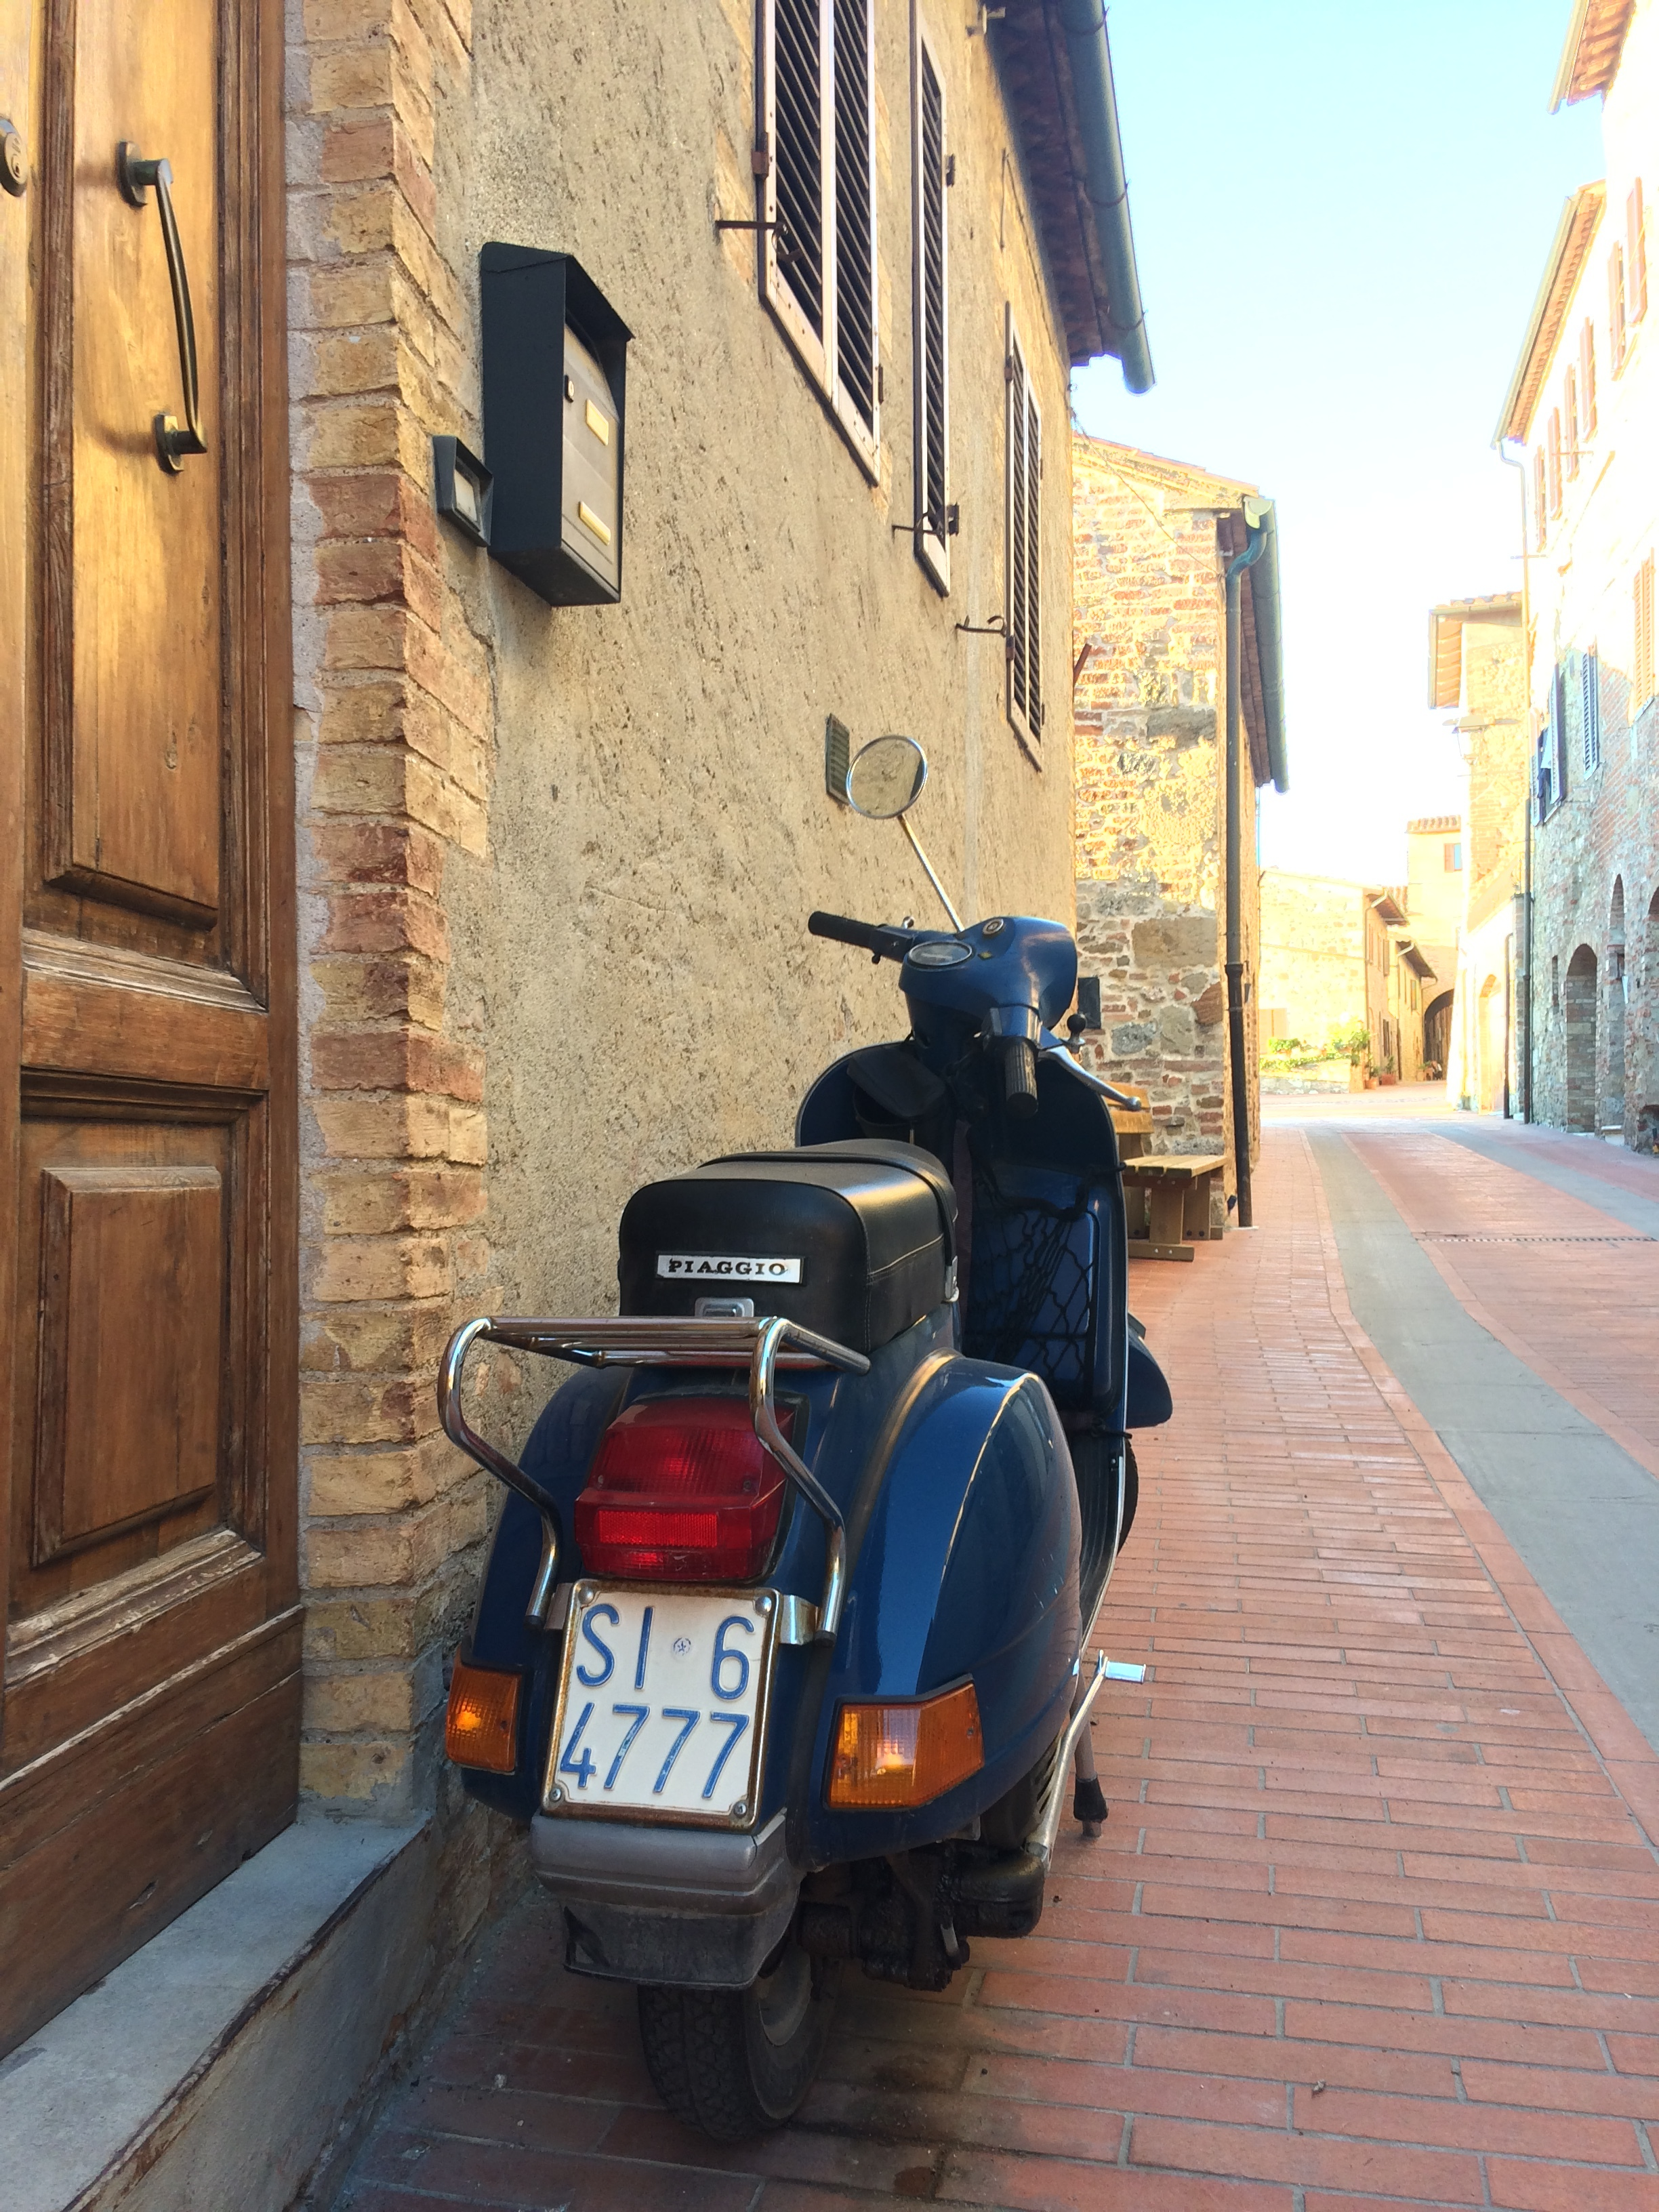 Tidy Vespa P-Range spotted in Casole D'Elsa, Tuscany (note Siena plate) - photo by Paul Hart, October 2018